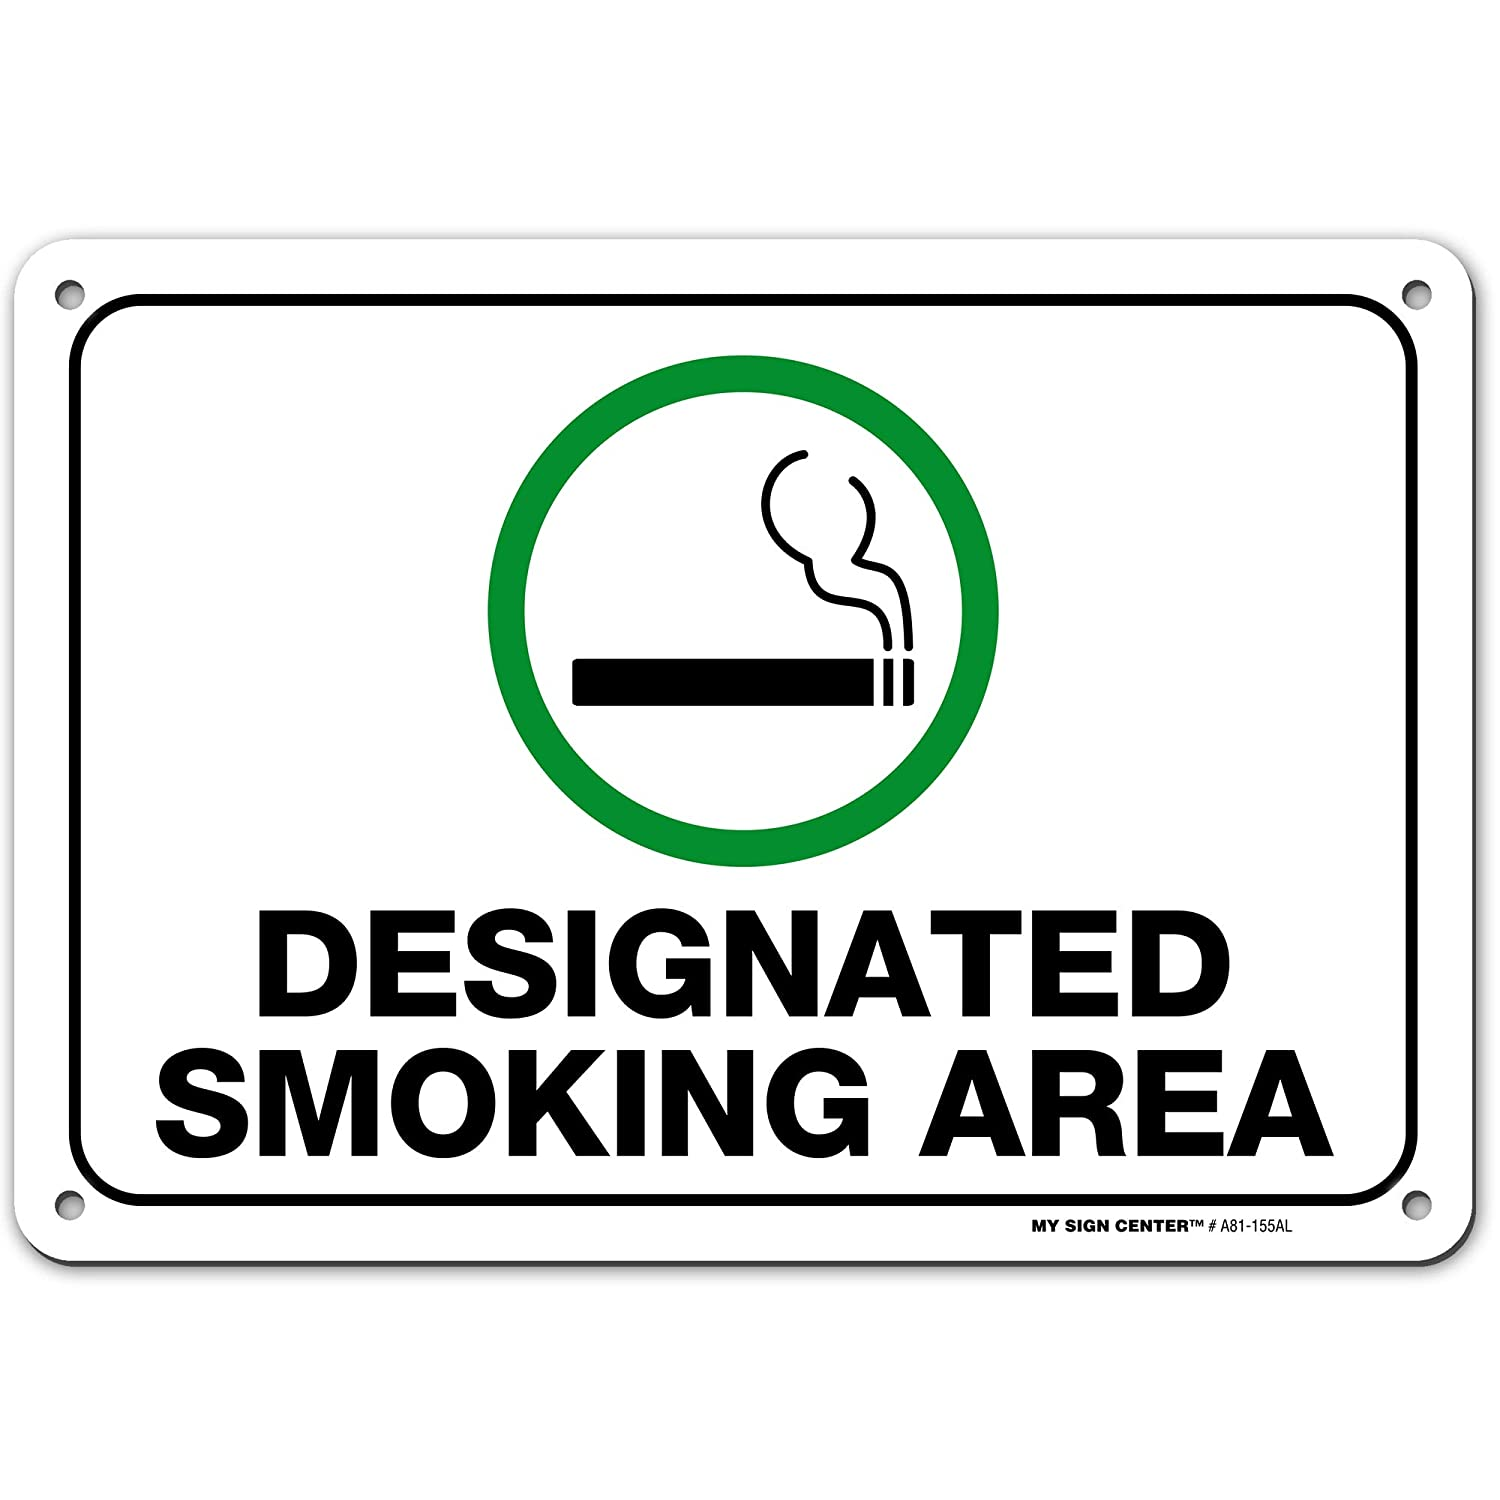 Designated Smoking Area Sign Made Out Of 040 Rust Free Aluminum Indoor Outdoor Use Uv Protected And Fade Resistant 7 X 10 By My Sign Center Amazon Com Industrial Scientific,Nursing School T Shirt Designs